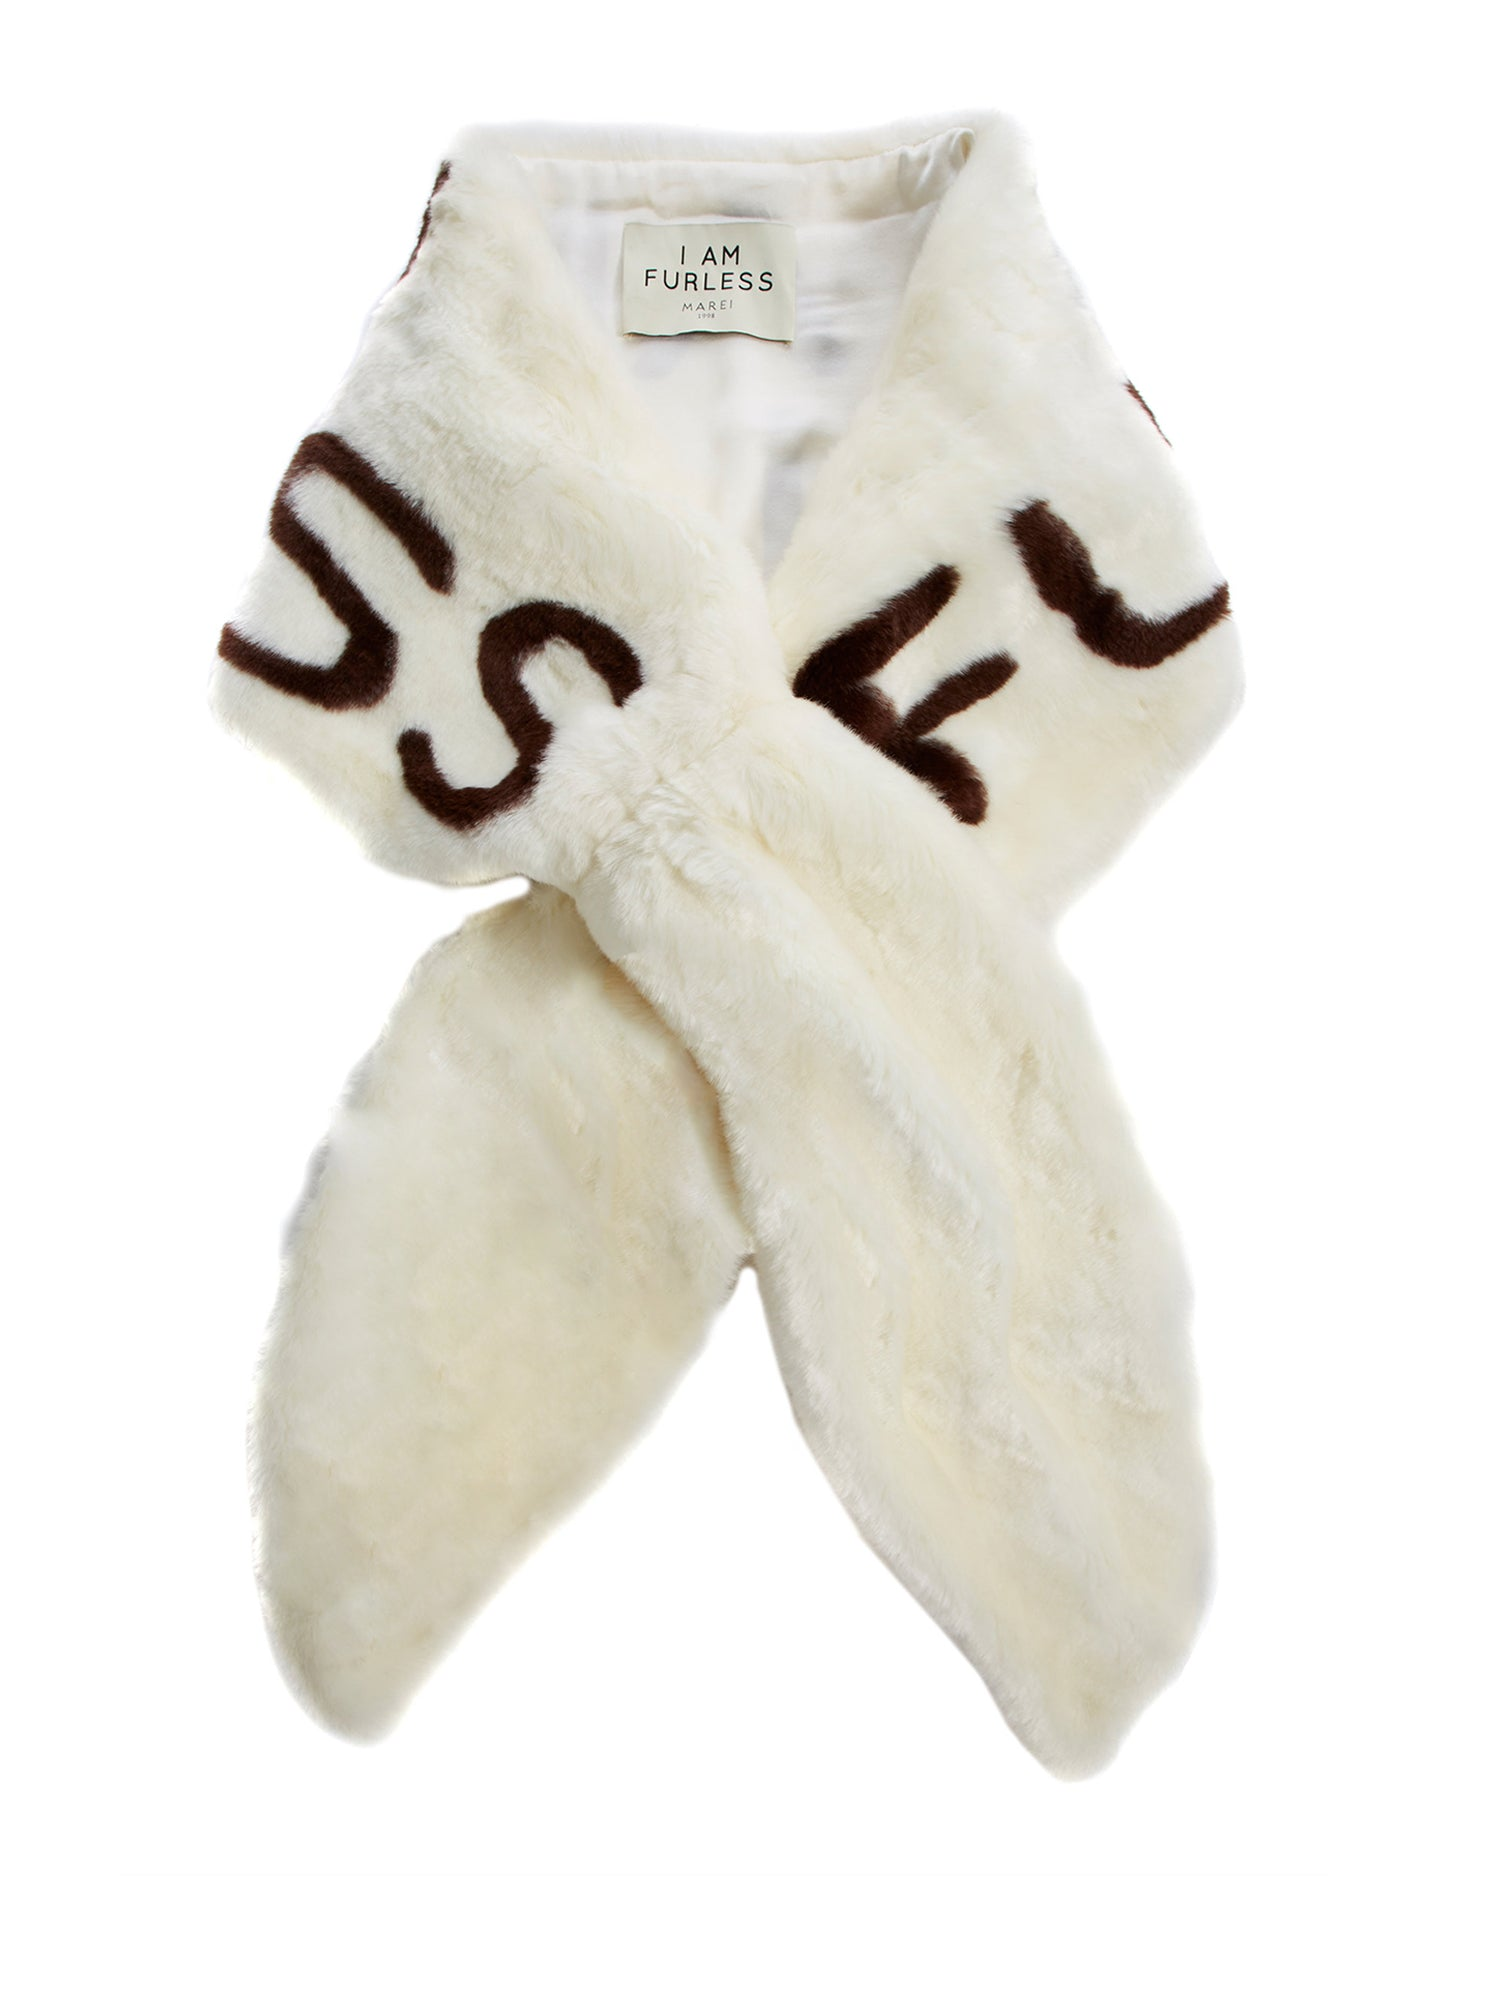 A Packshot Of Marei1998's Furless Faux Fur Stole In Off White Color. Exclusively Designed As Part Of Marei1998's Furless Label, This Stole Is A Bold Statement Piece. Cut In A Wide Silhouette, It Is Crafted From Plush Faux Fur In Neutral Hue, Featuring Jacquard Design In Dark Brown. Front View.